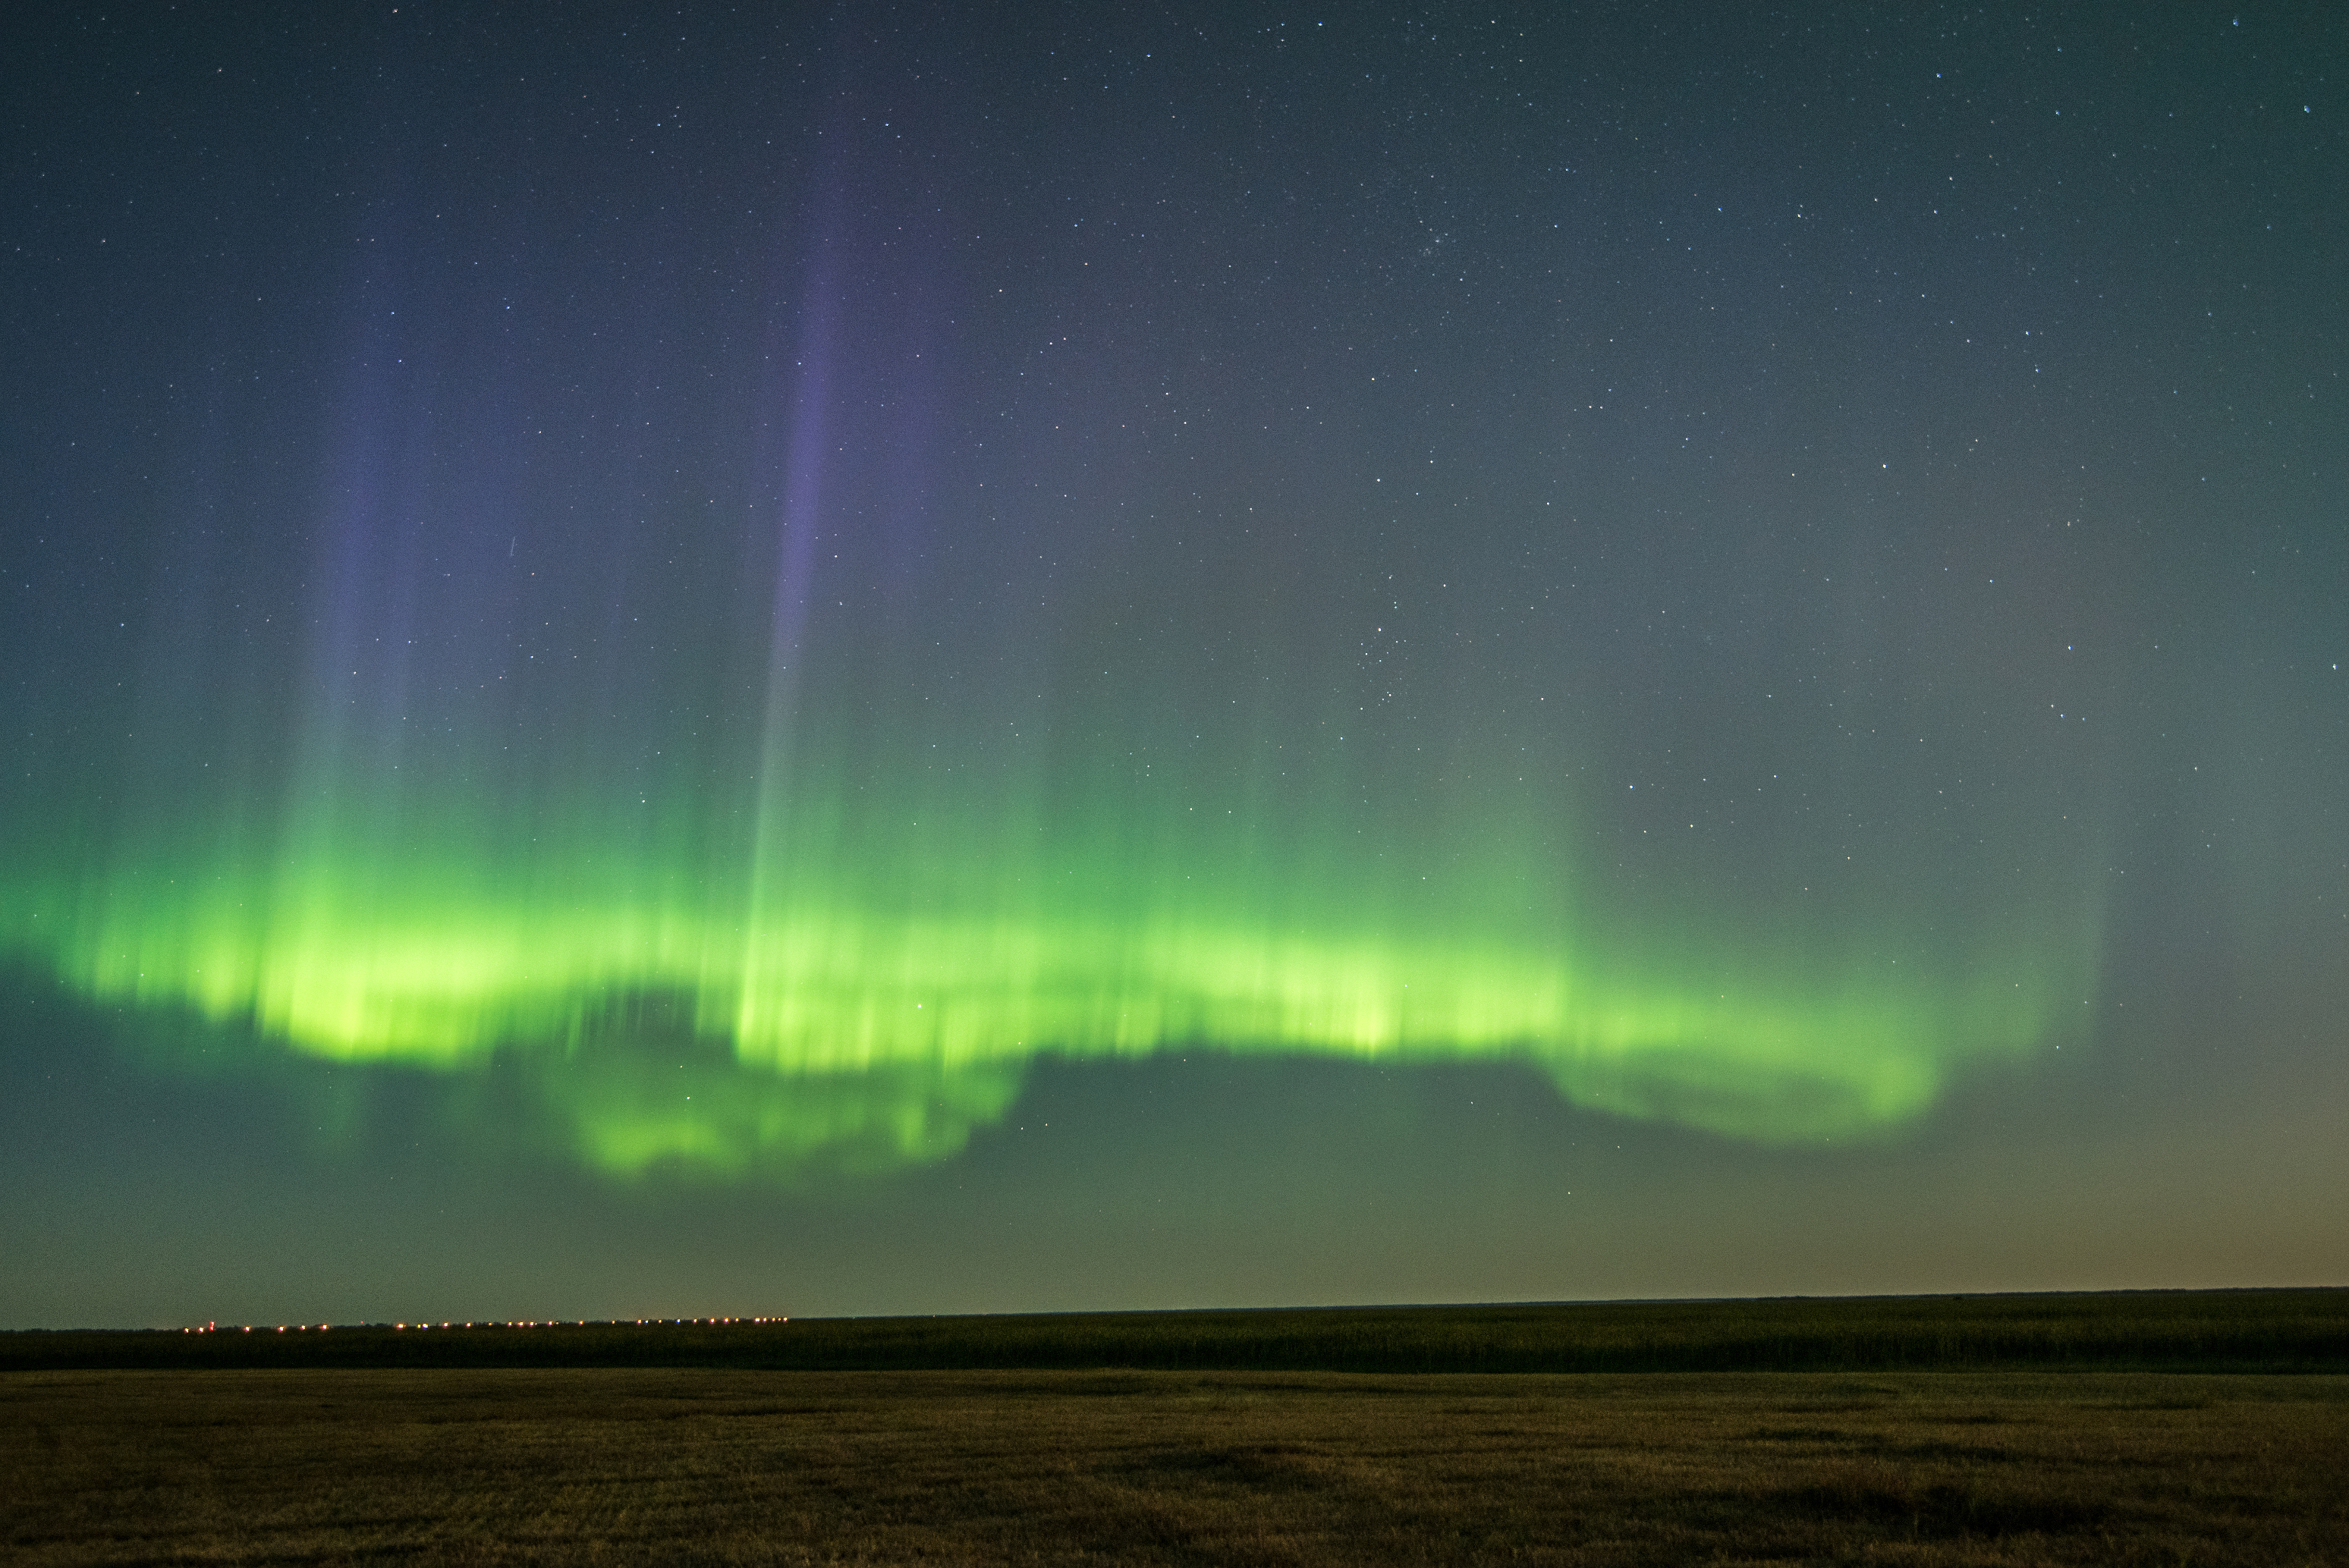 Aurora in Manitoba, Canada on September 7th, 2017